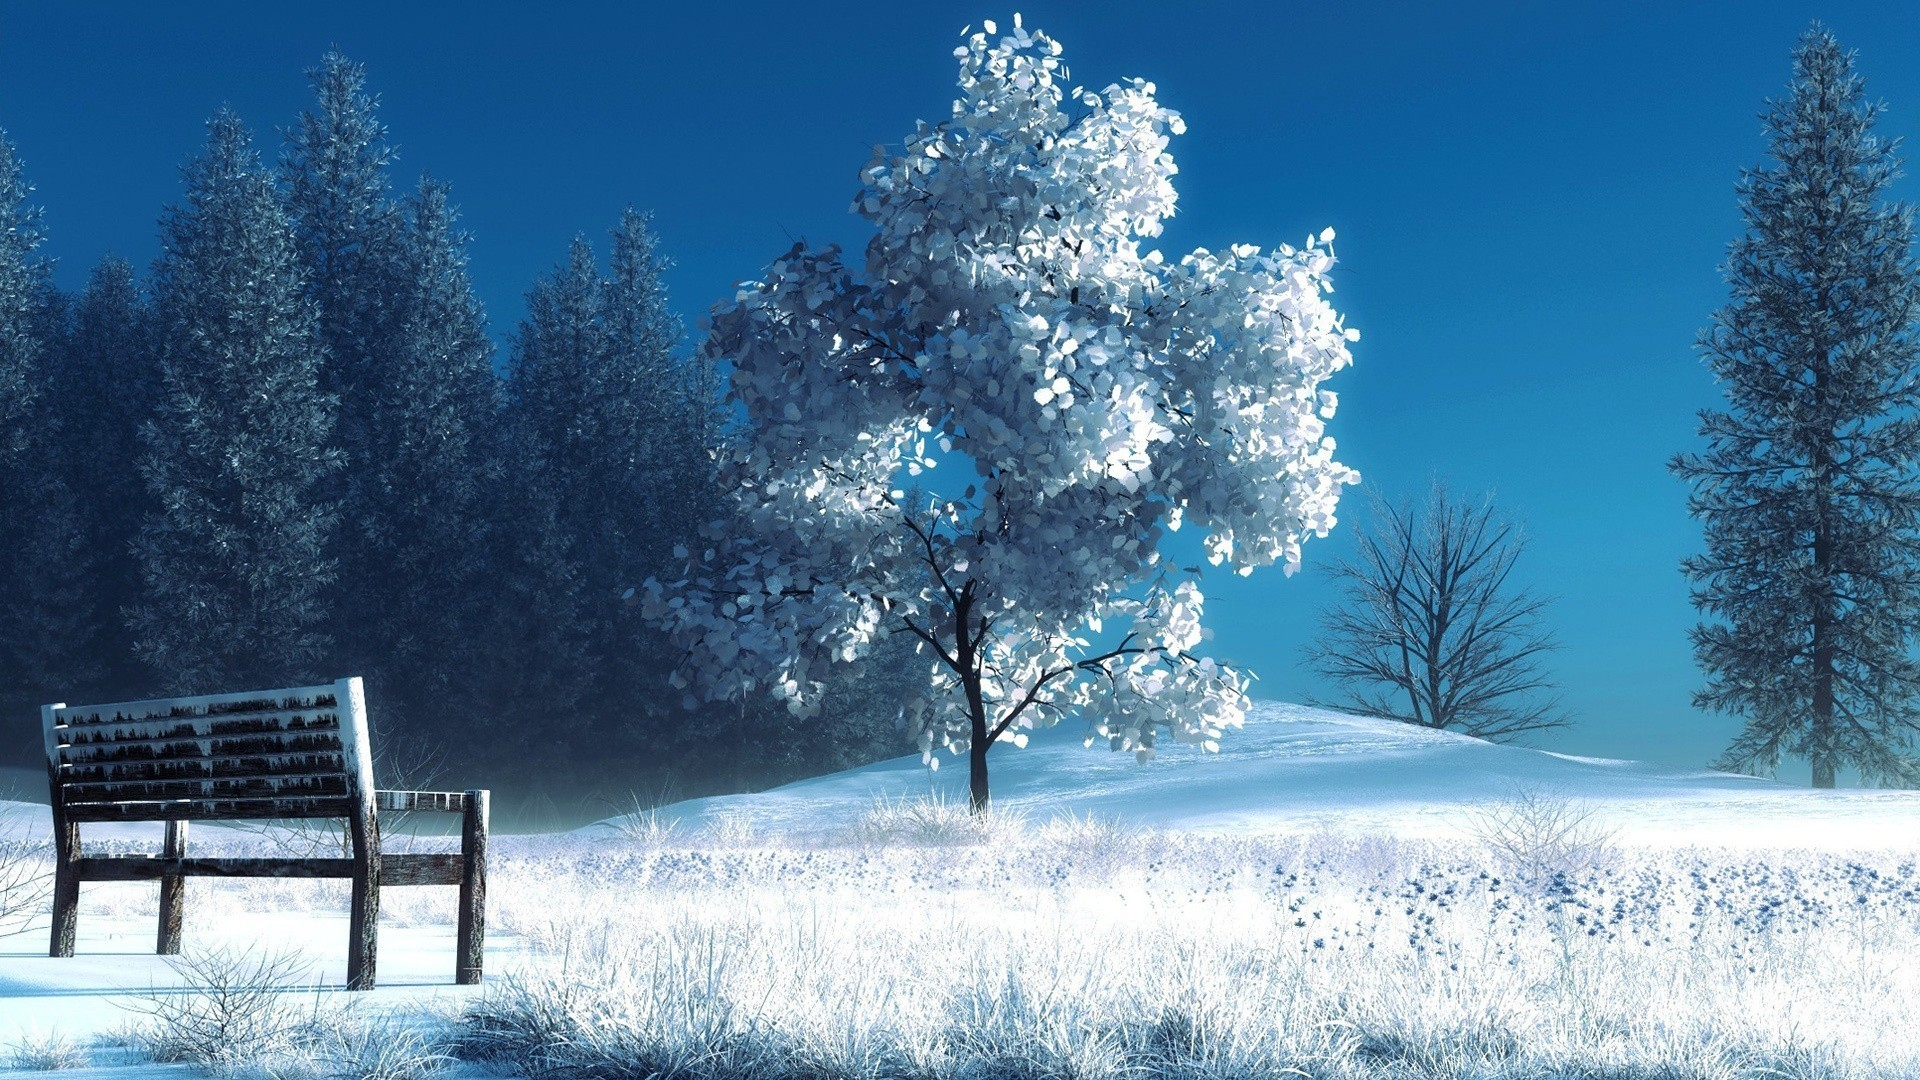 Preview wallpaper winter, landscape, nature, snow, bench, trees 1920×1080